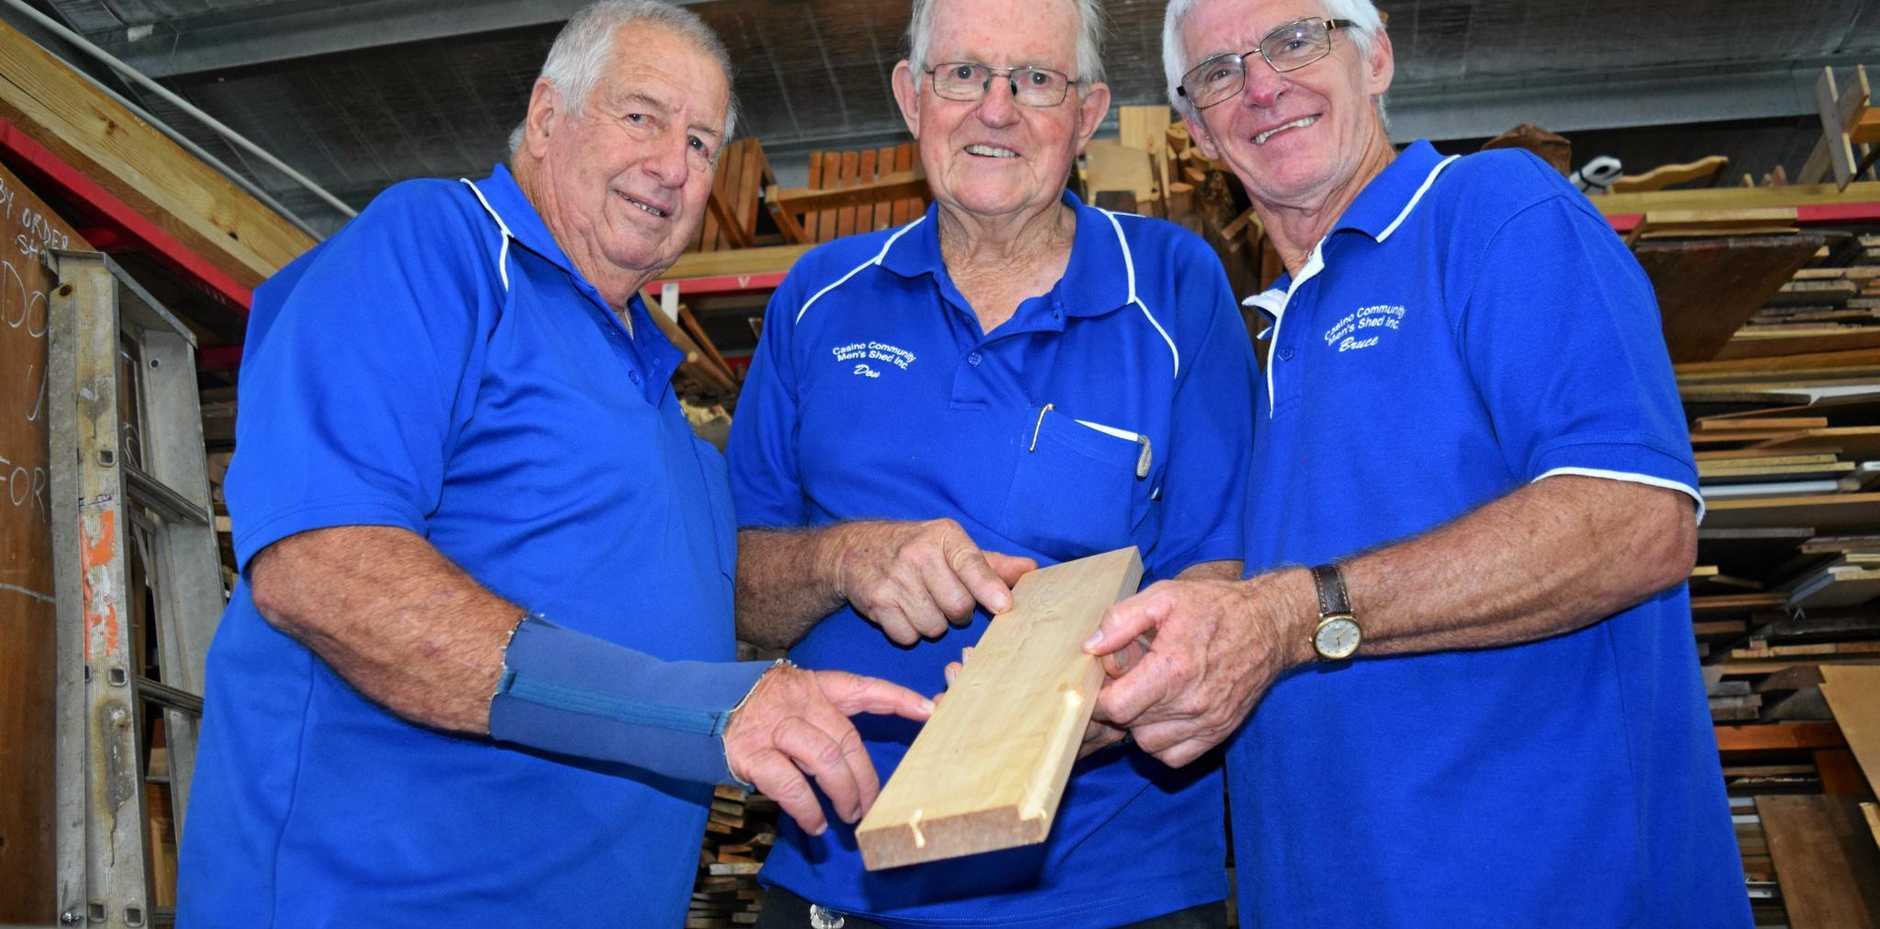 GREAT DAY: Harold Wray, 79, Don Simpkins, 79, and Bruce Rultey, 67, at the opening of the new Casino Men's Shed at the Casino Showgrounds.